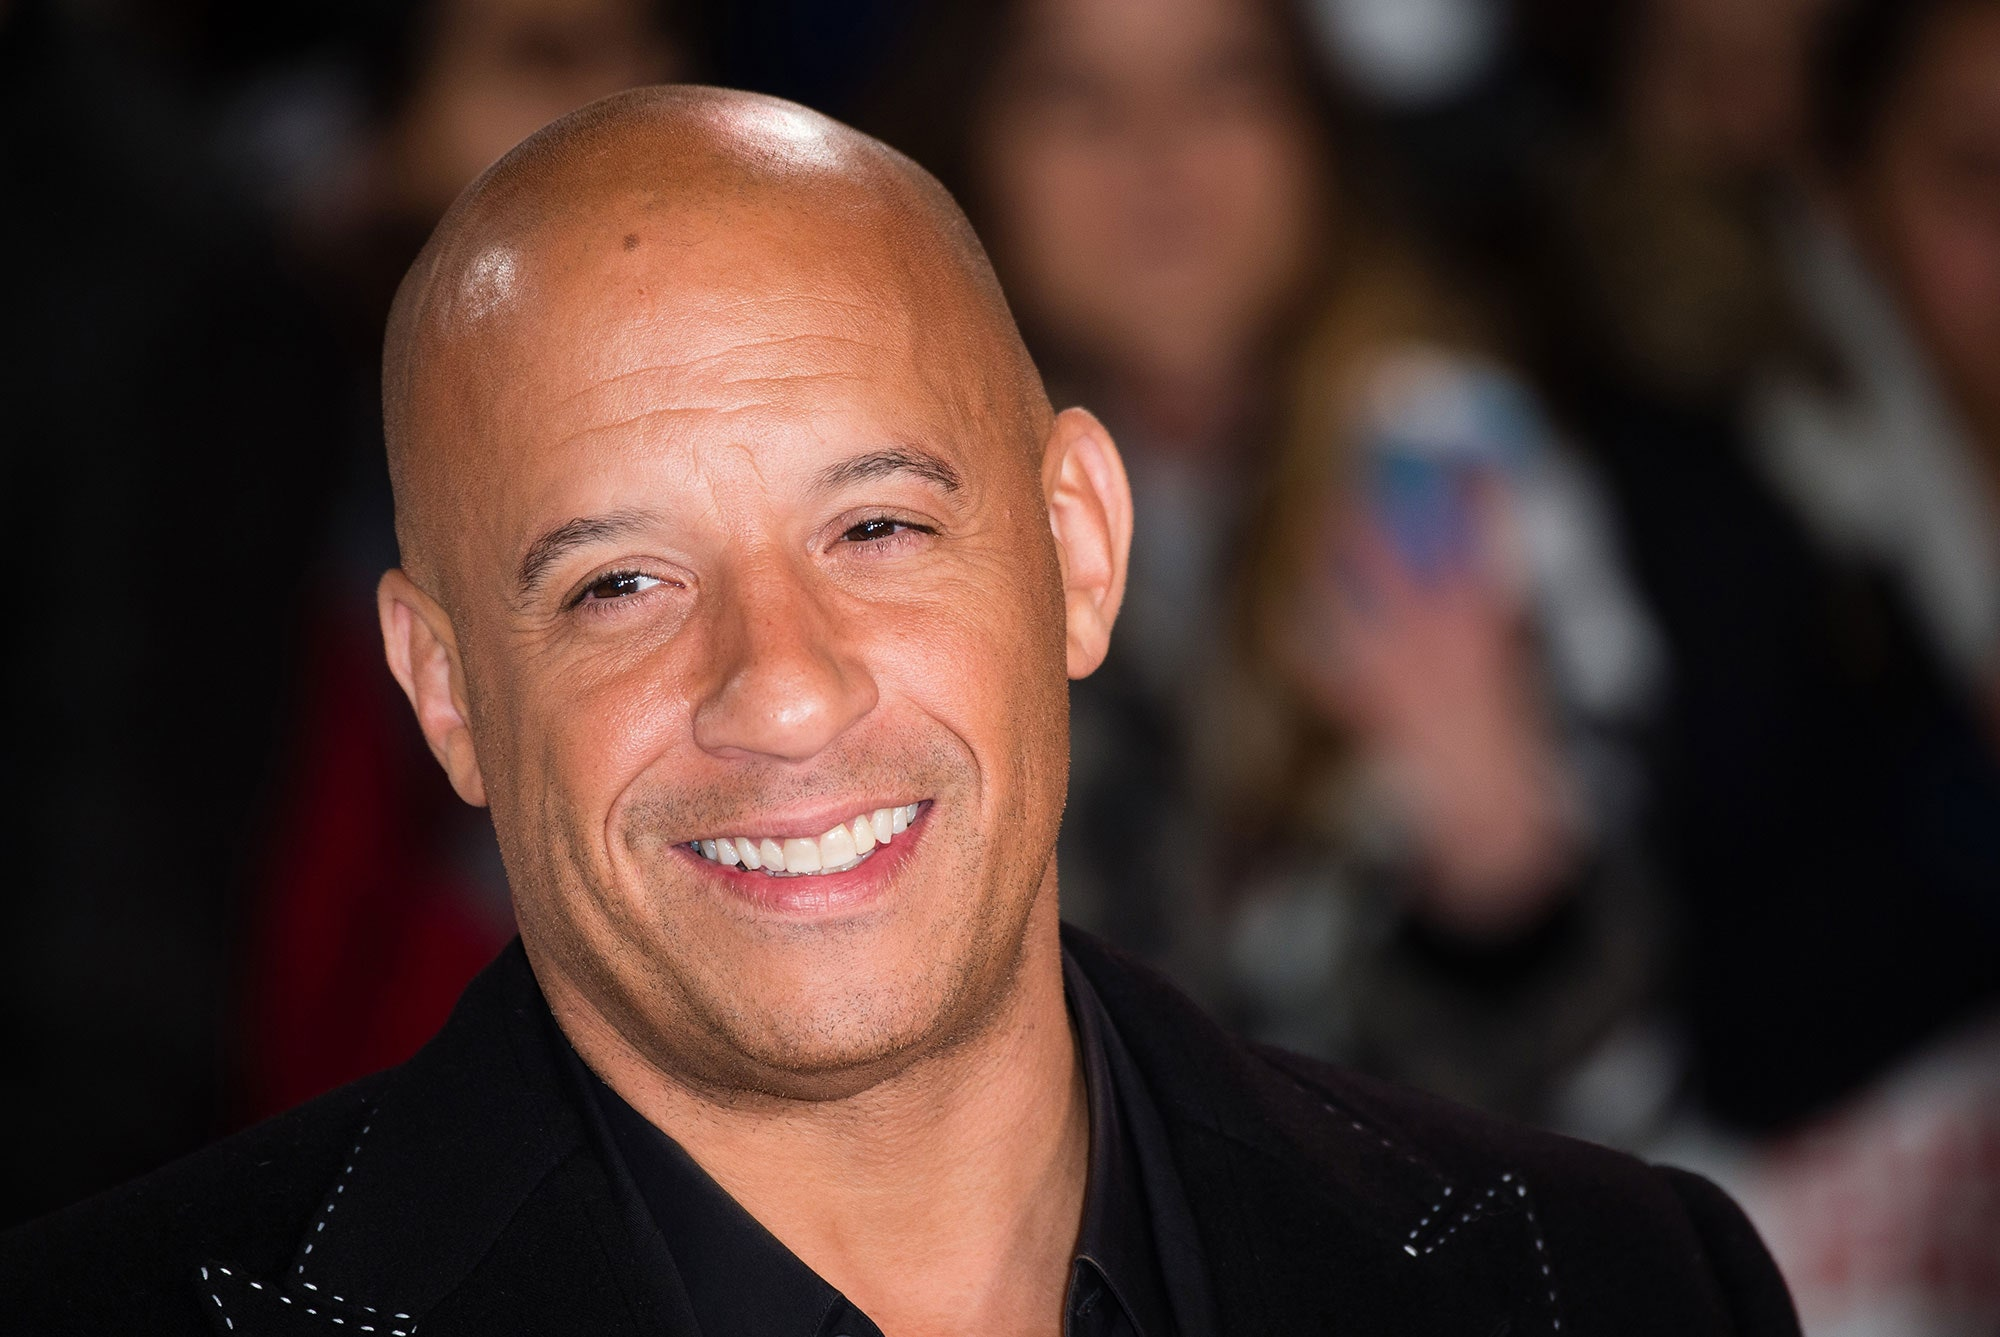 Vin Diesel Biography, Facts & Life Story Updated 2021